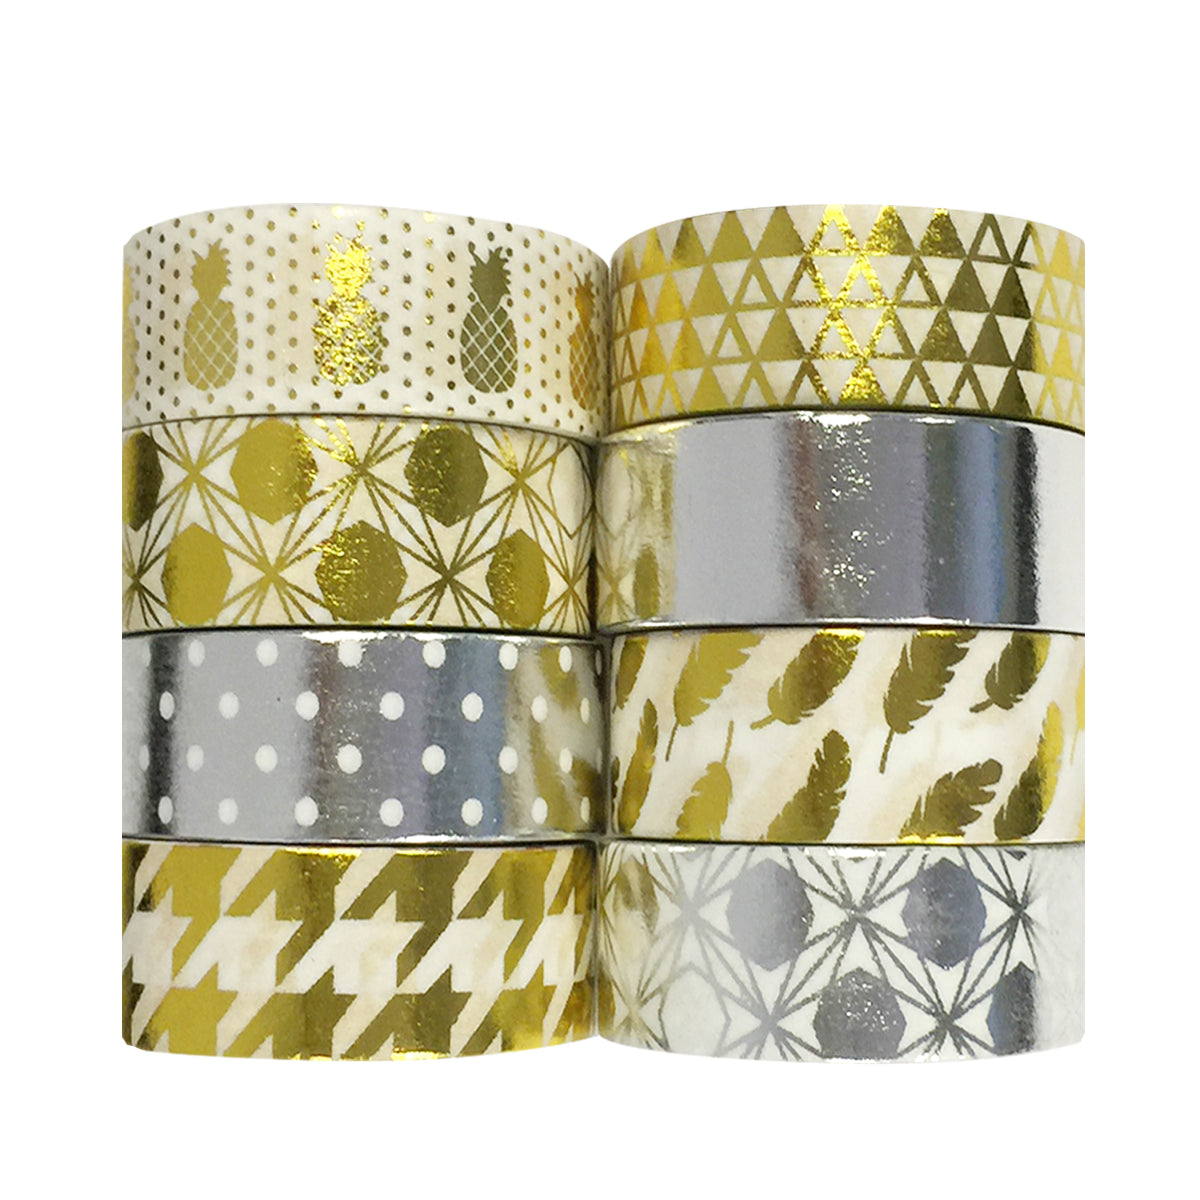 Wrapables Metallic Foil Washi Masking Tape Collection (Set of 8)